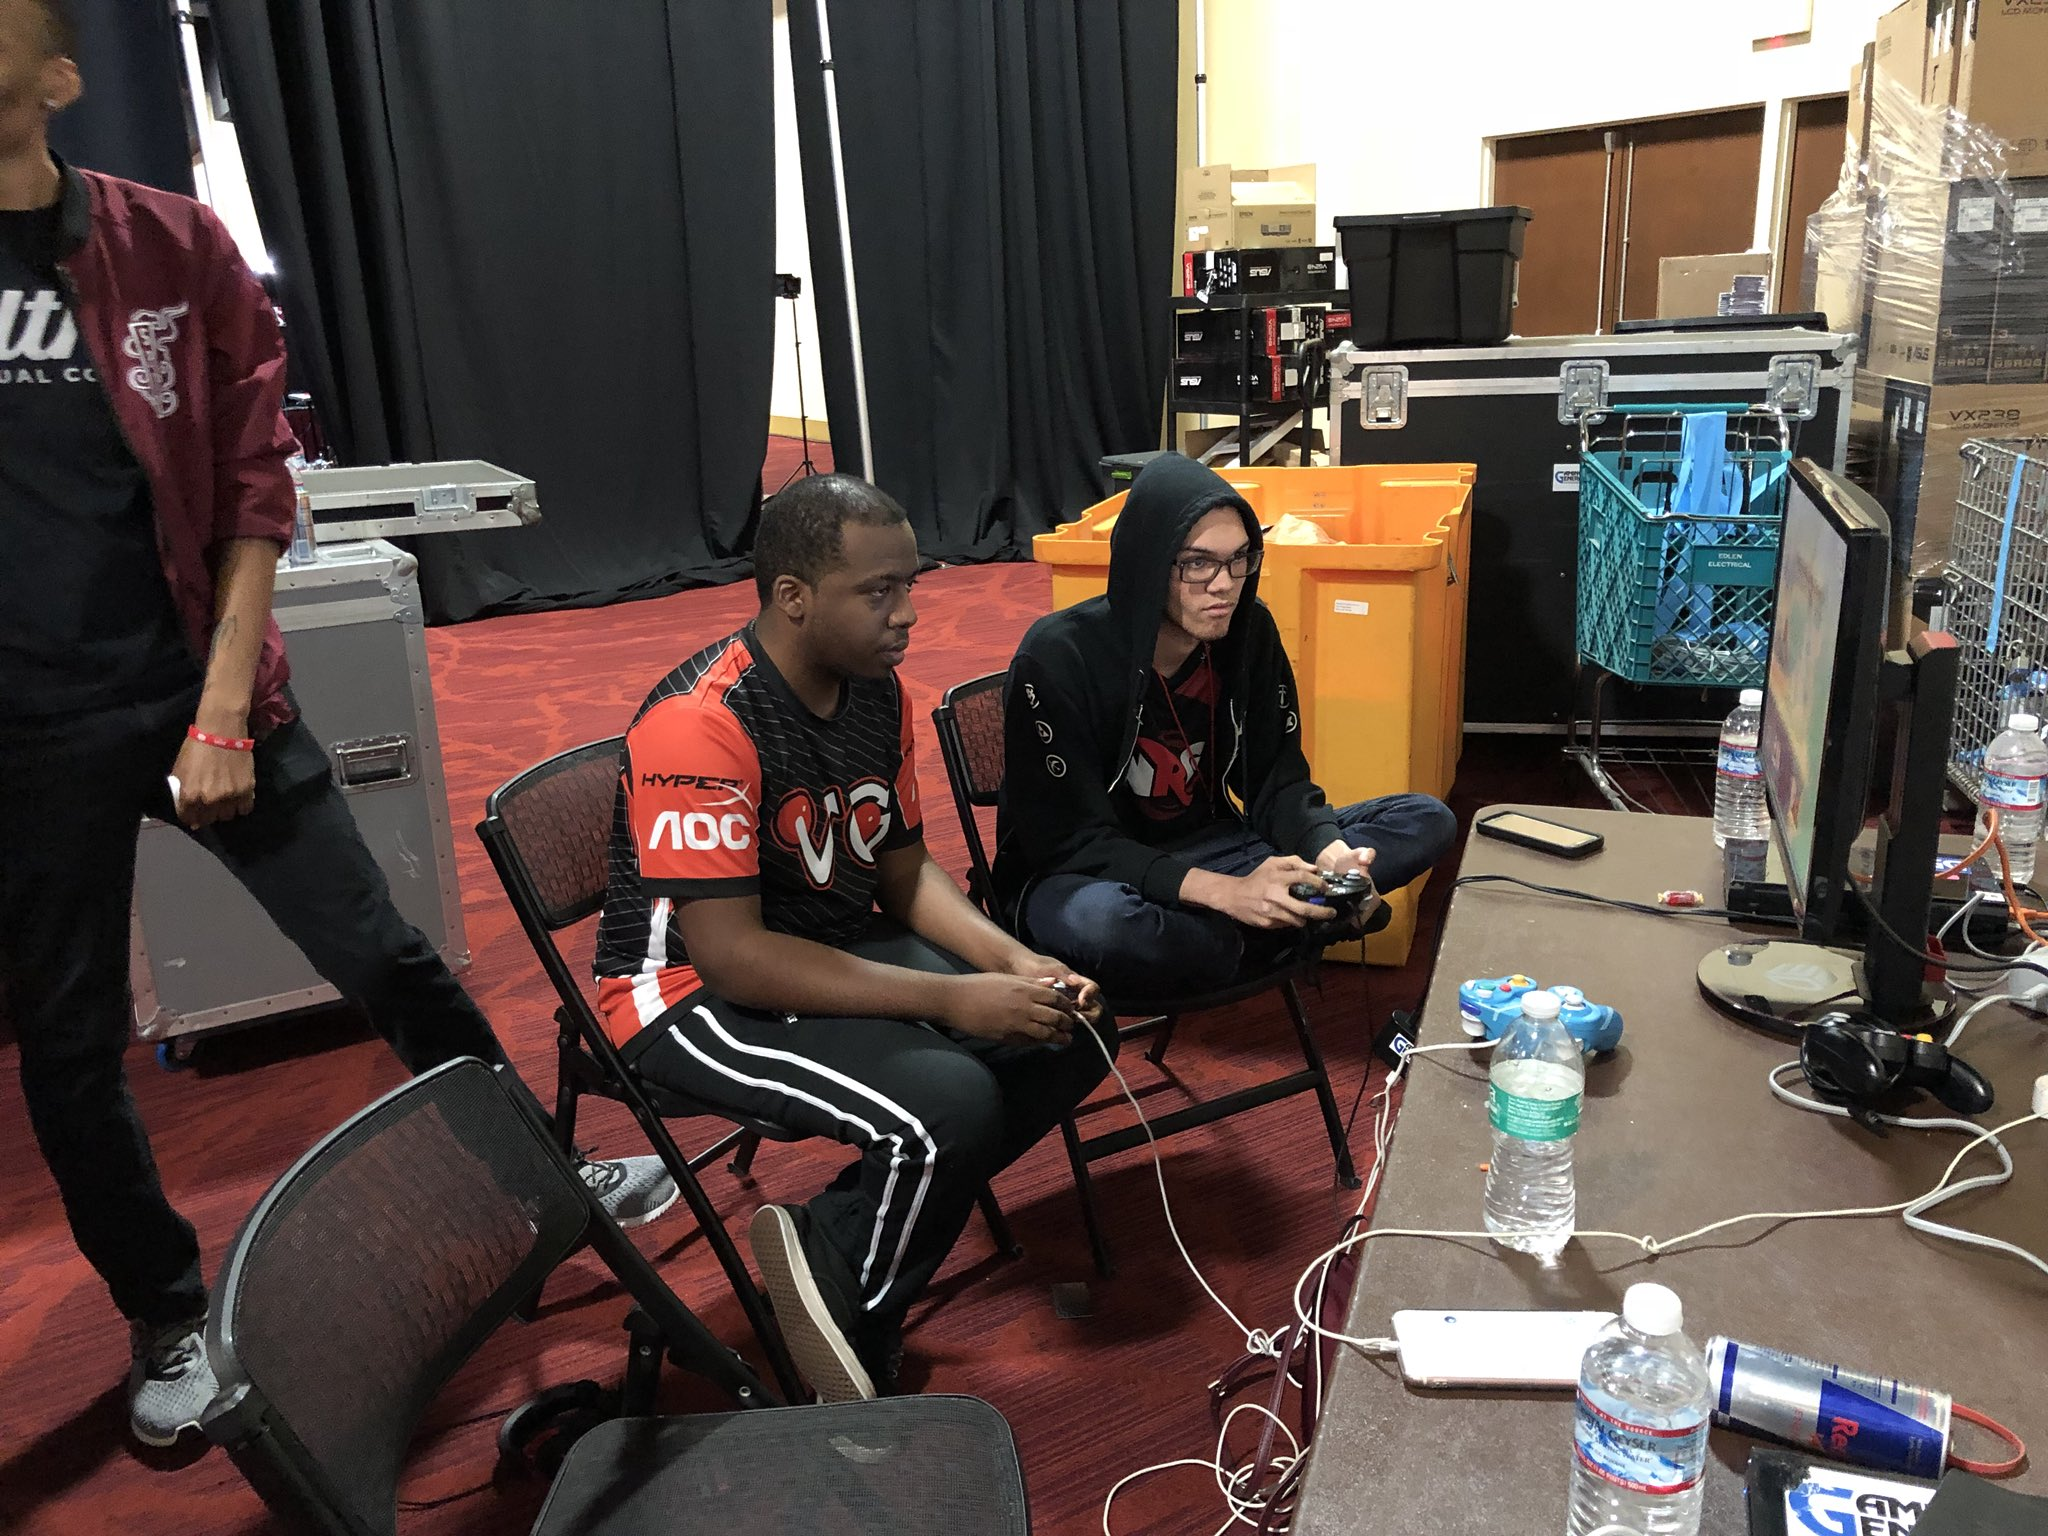 #SmashBrosWiiU pools are heating up! Meanwhile, @PinkFreshhh and @NairoMK are making sure they're ready to go. �� https://t.co/u1qm2XBjur